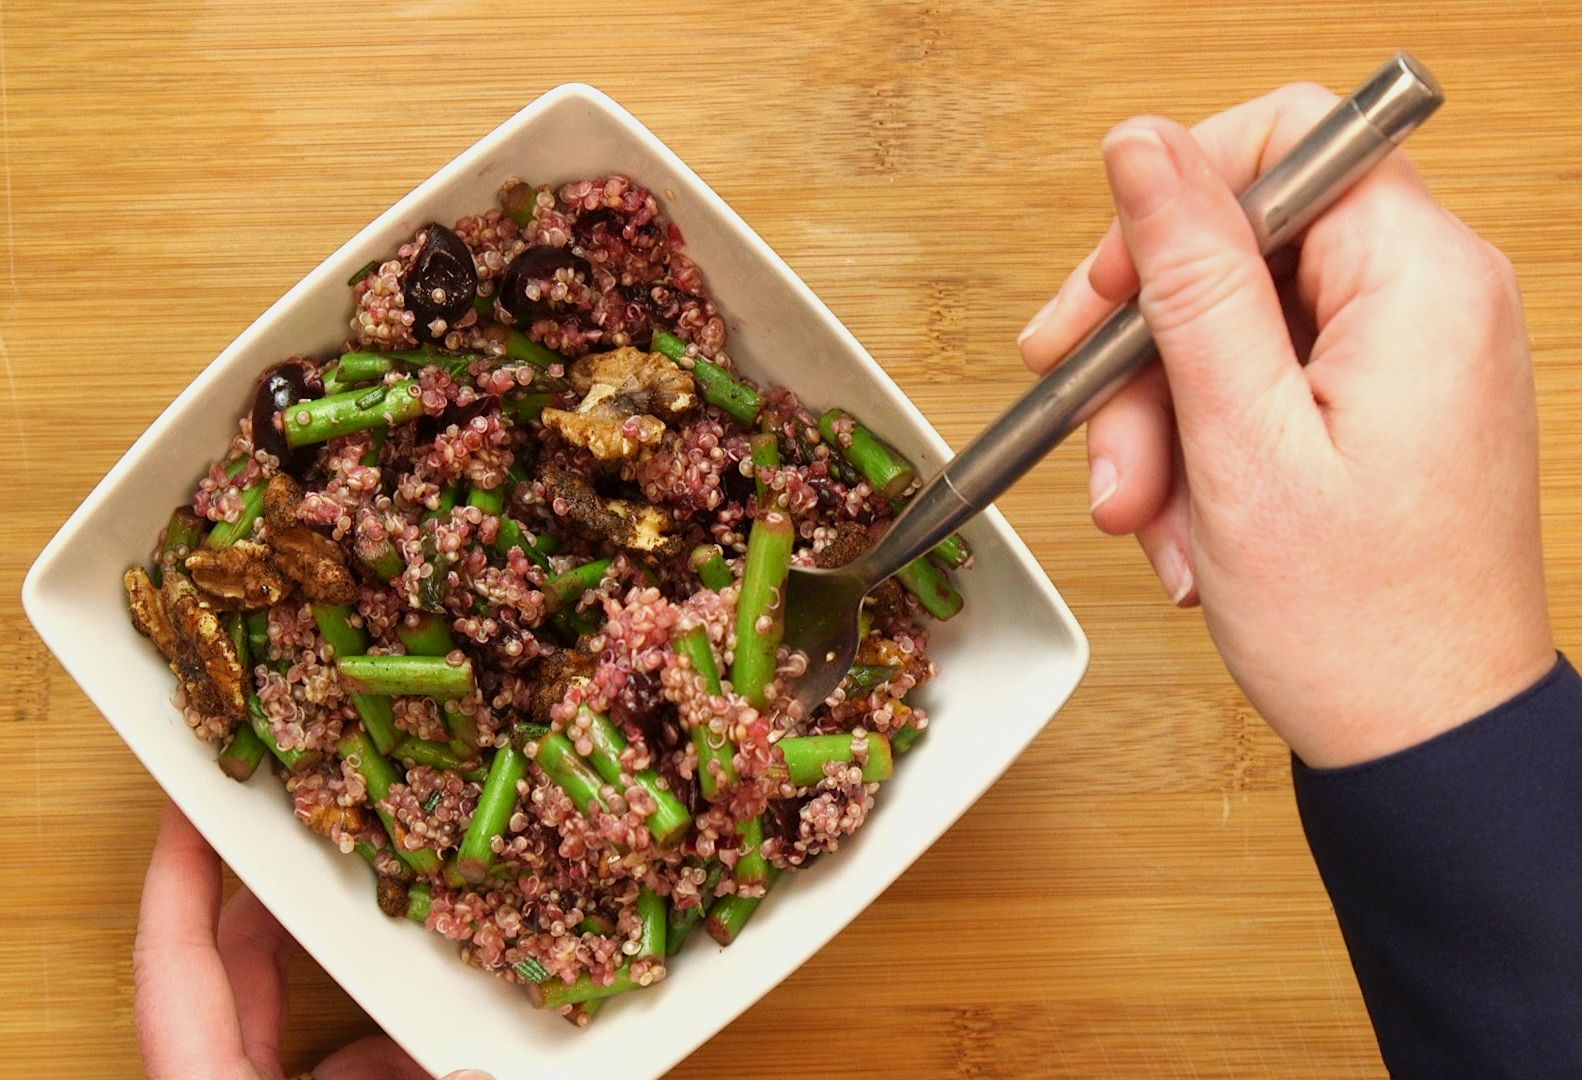 Quinoa salad with toasted walnuts puts a healthy dinner on the table in 45 minutes. |